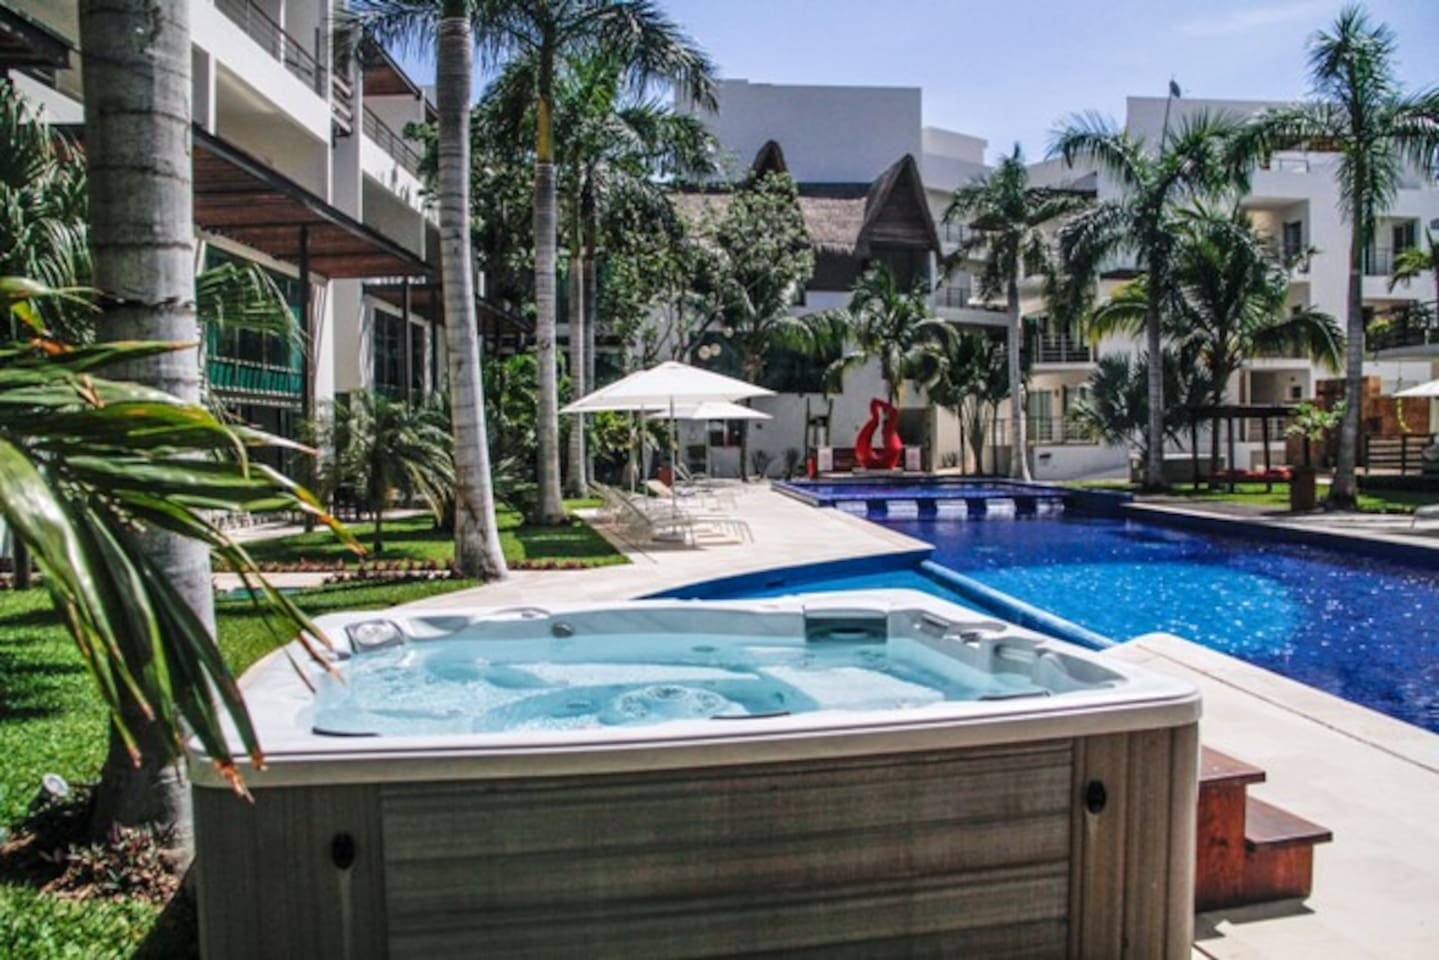 Best pool and place. Luxury 2 bed